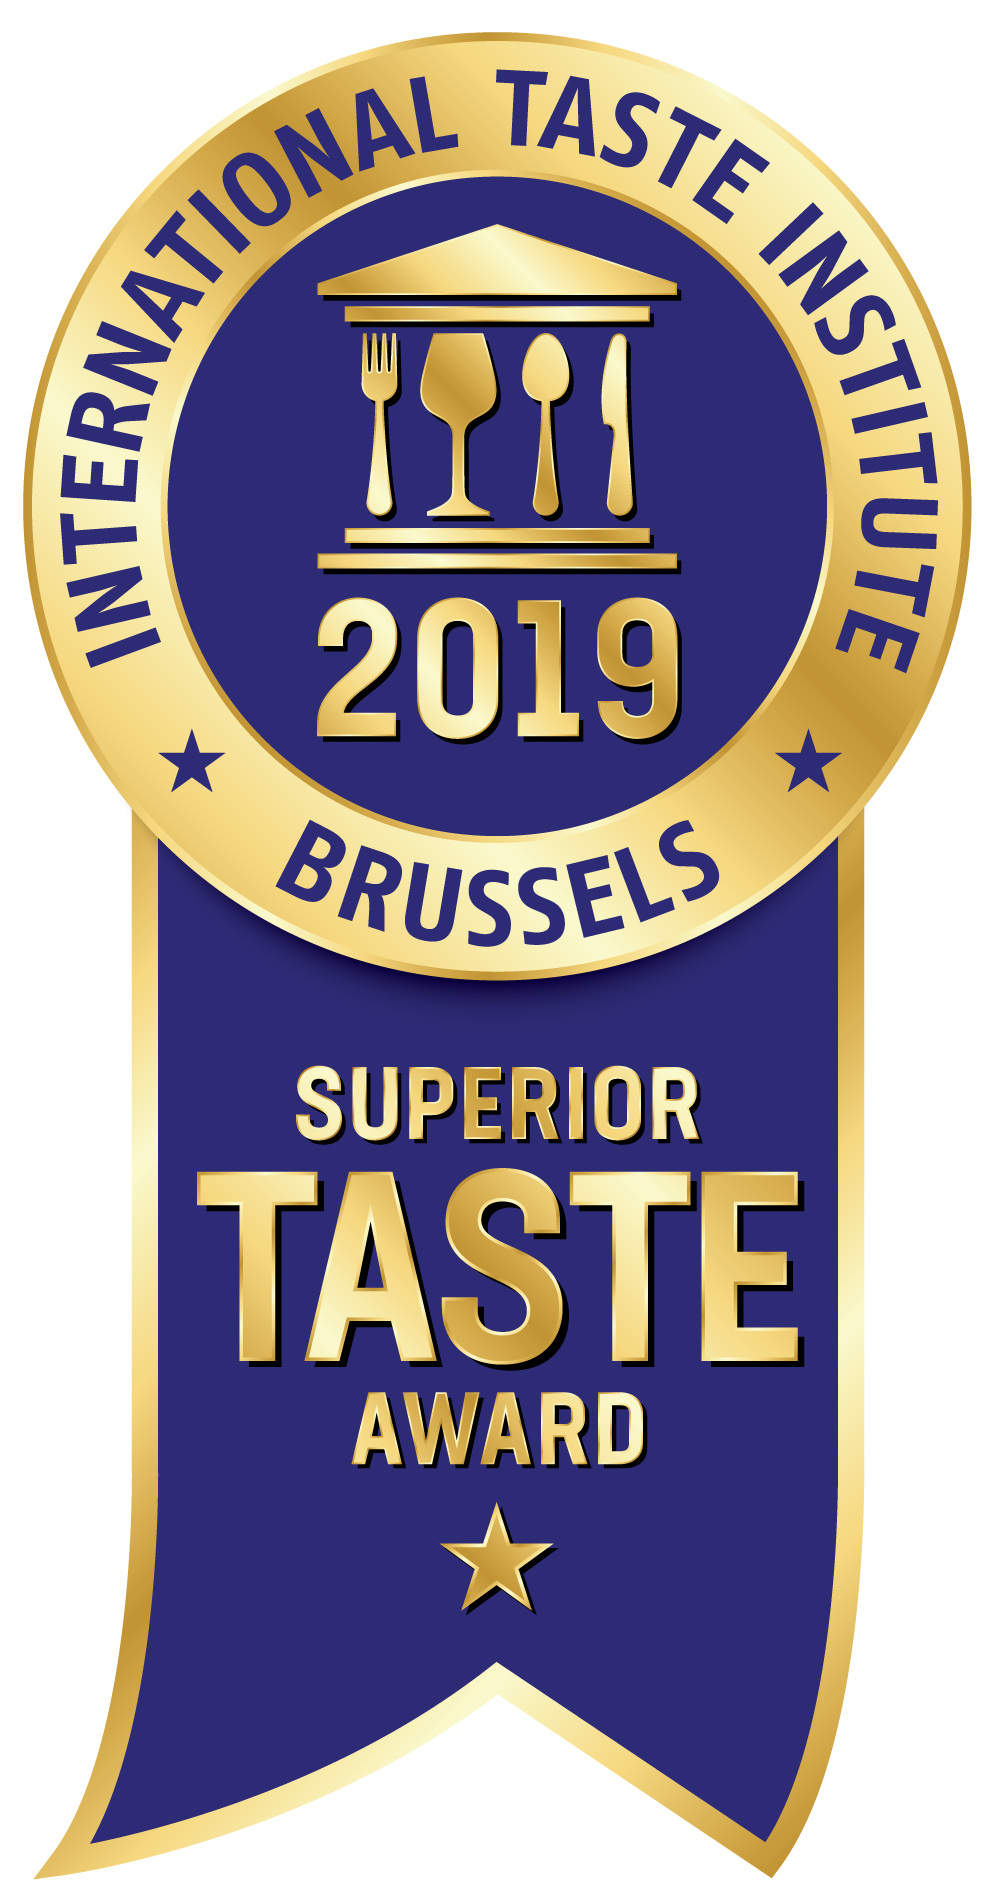 International Taste Institute Bruselles, 1 Estrella